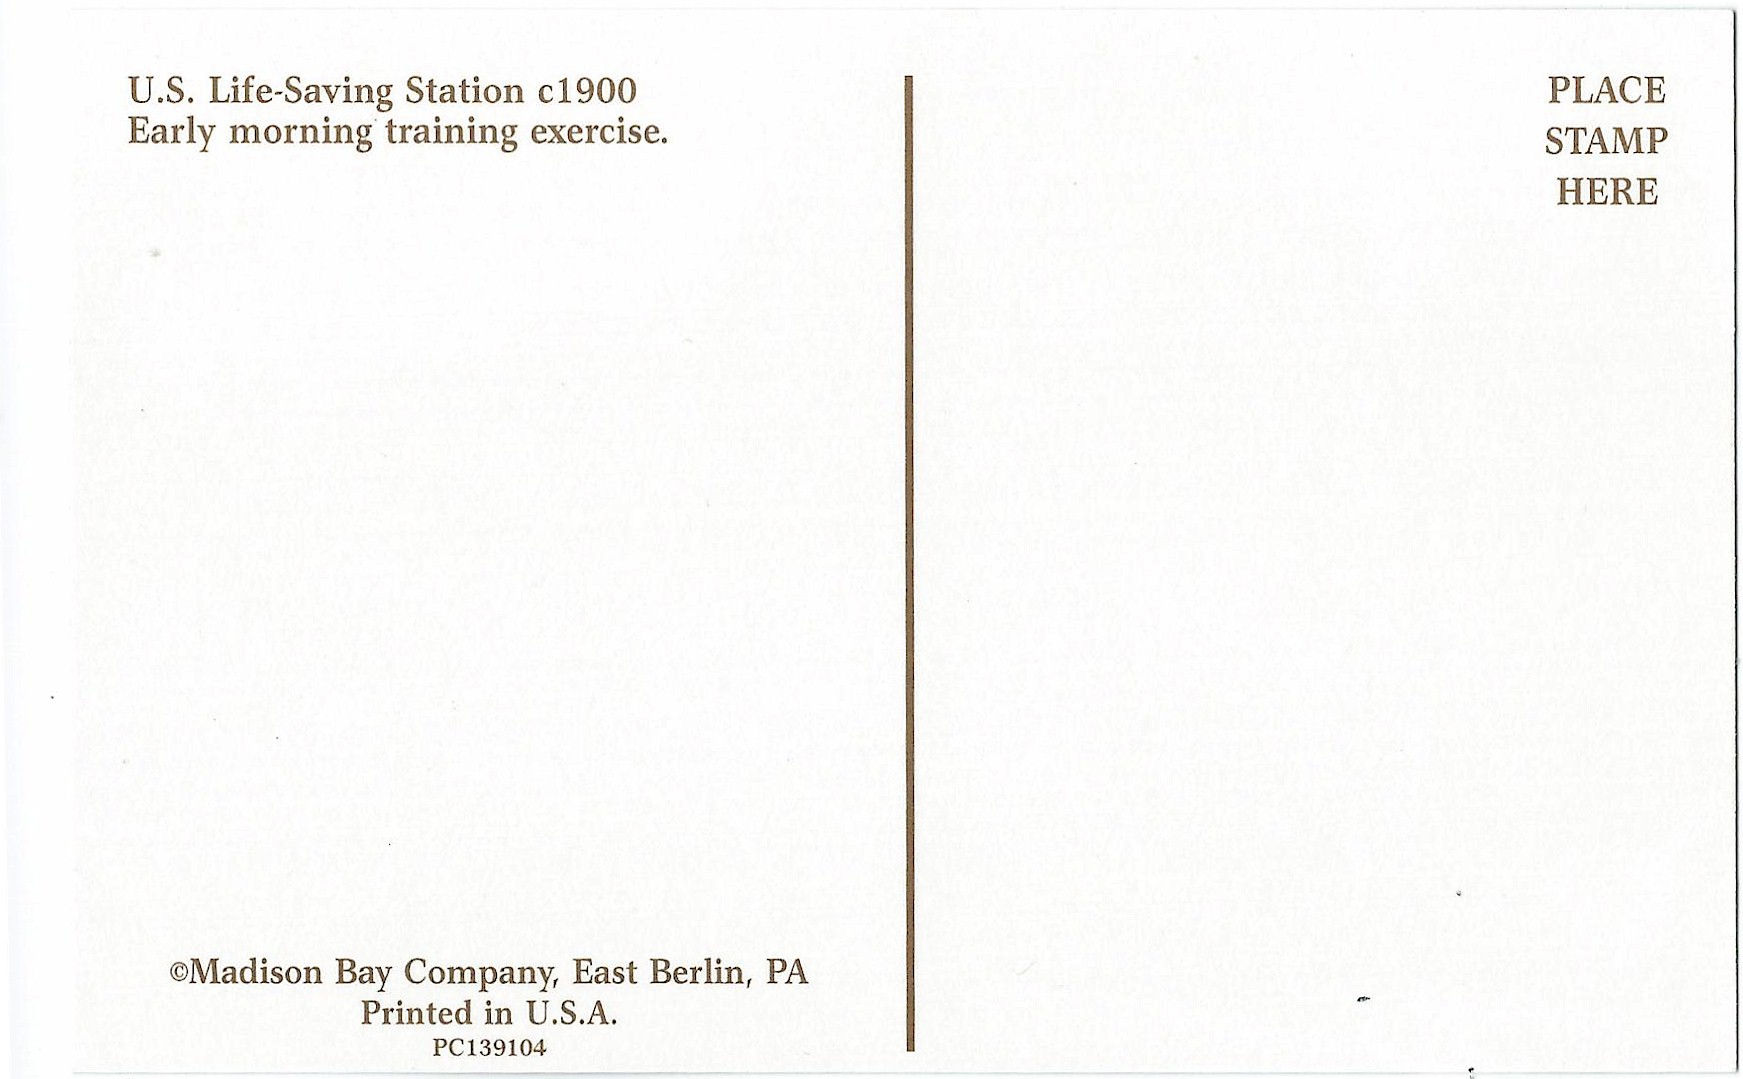 US Life Saving Service: Station Training Postcard PC139104 - Click Image to Close